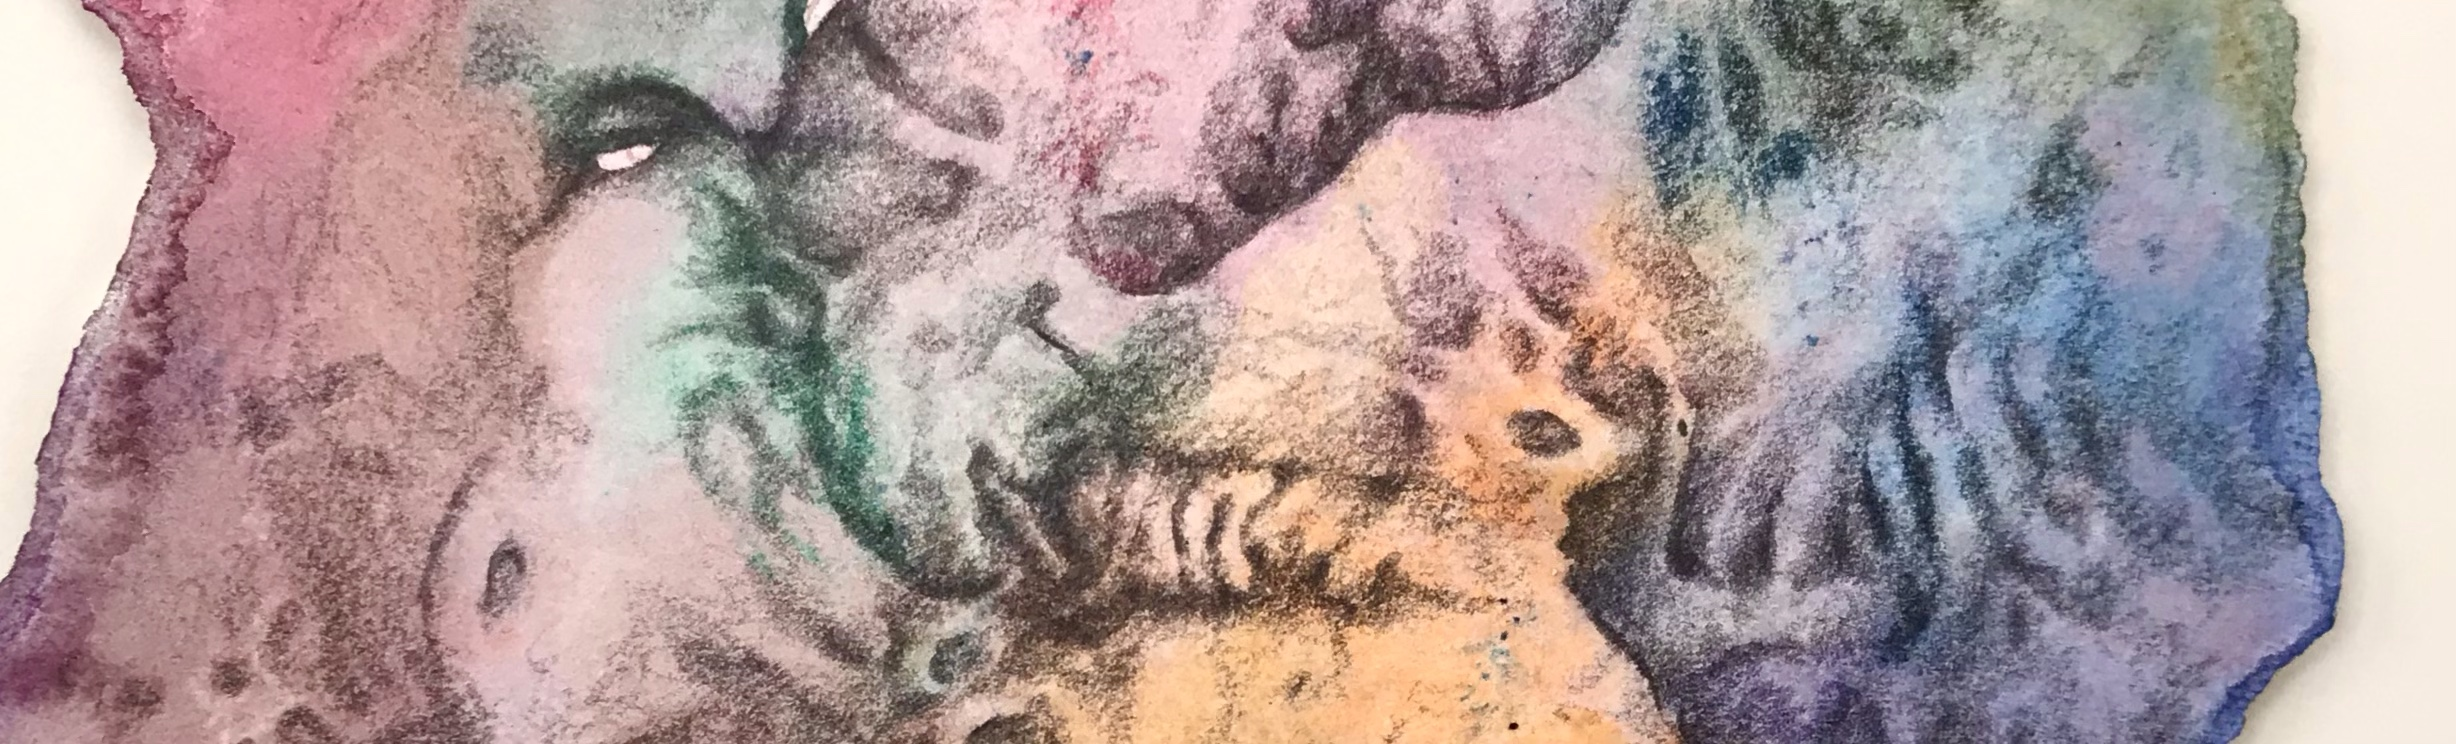 Detail of an abstract pencil drawing over a watercolor painting by MJ Seal